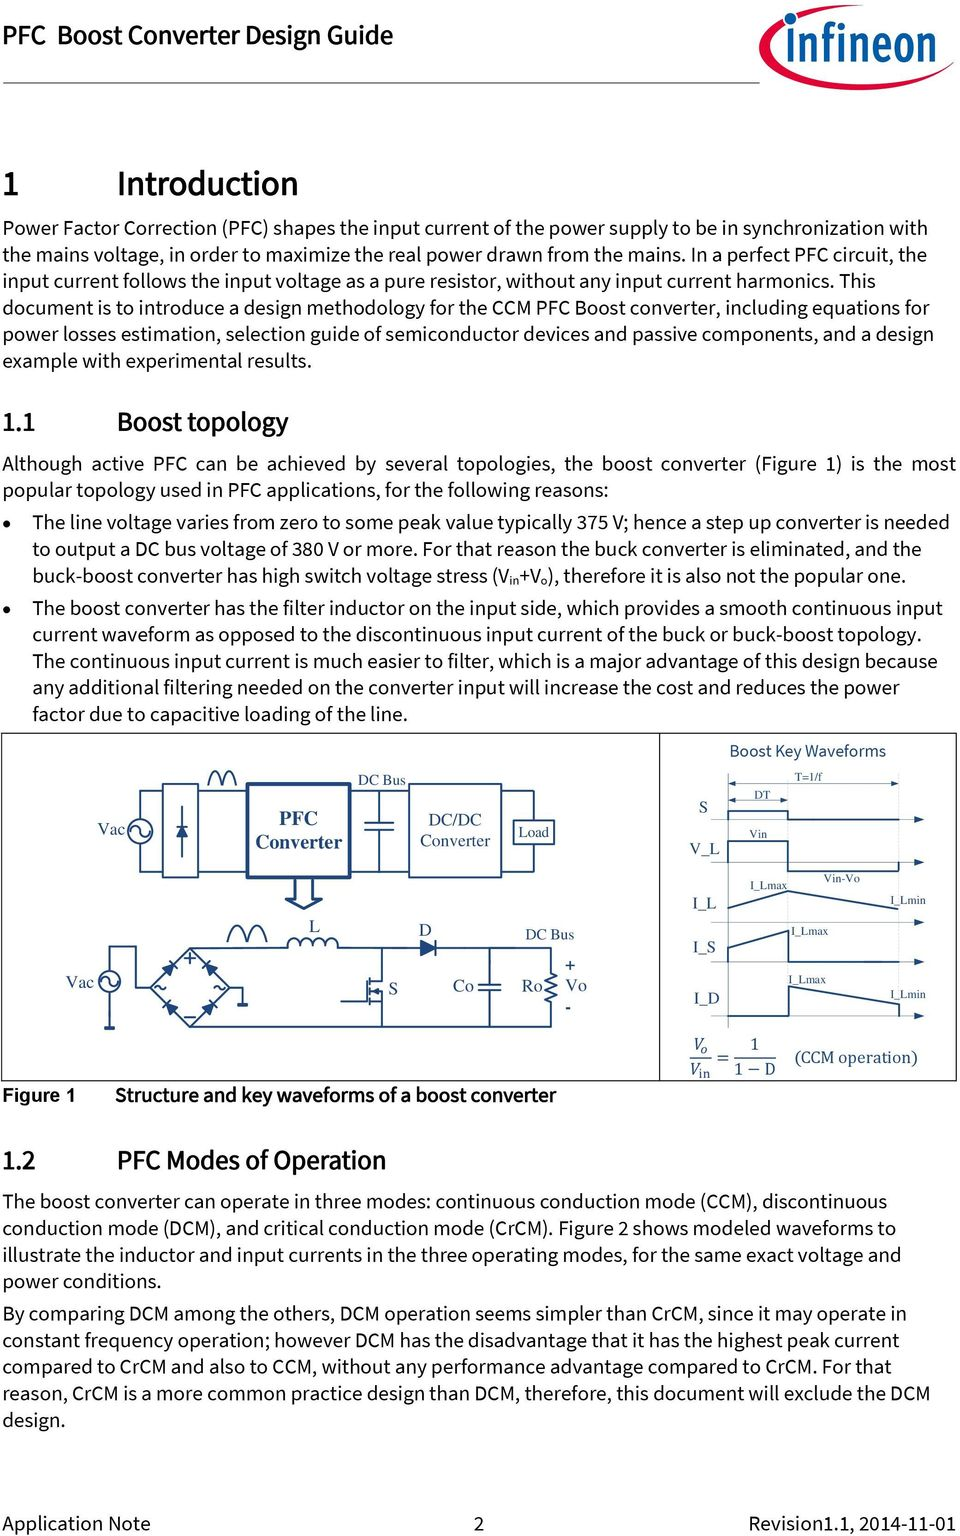 This document is to introduce a design methodology for the CCM PFC Boost converter, including equations for power losses estimation, selection guide of semiconductor devices and passive components,